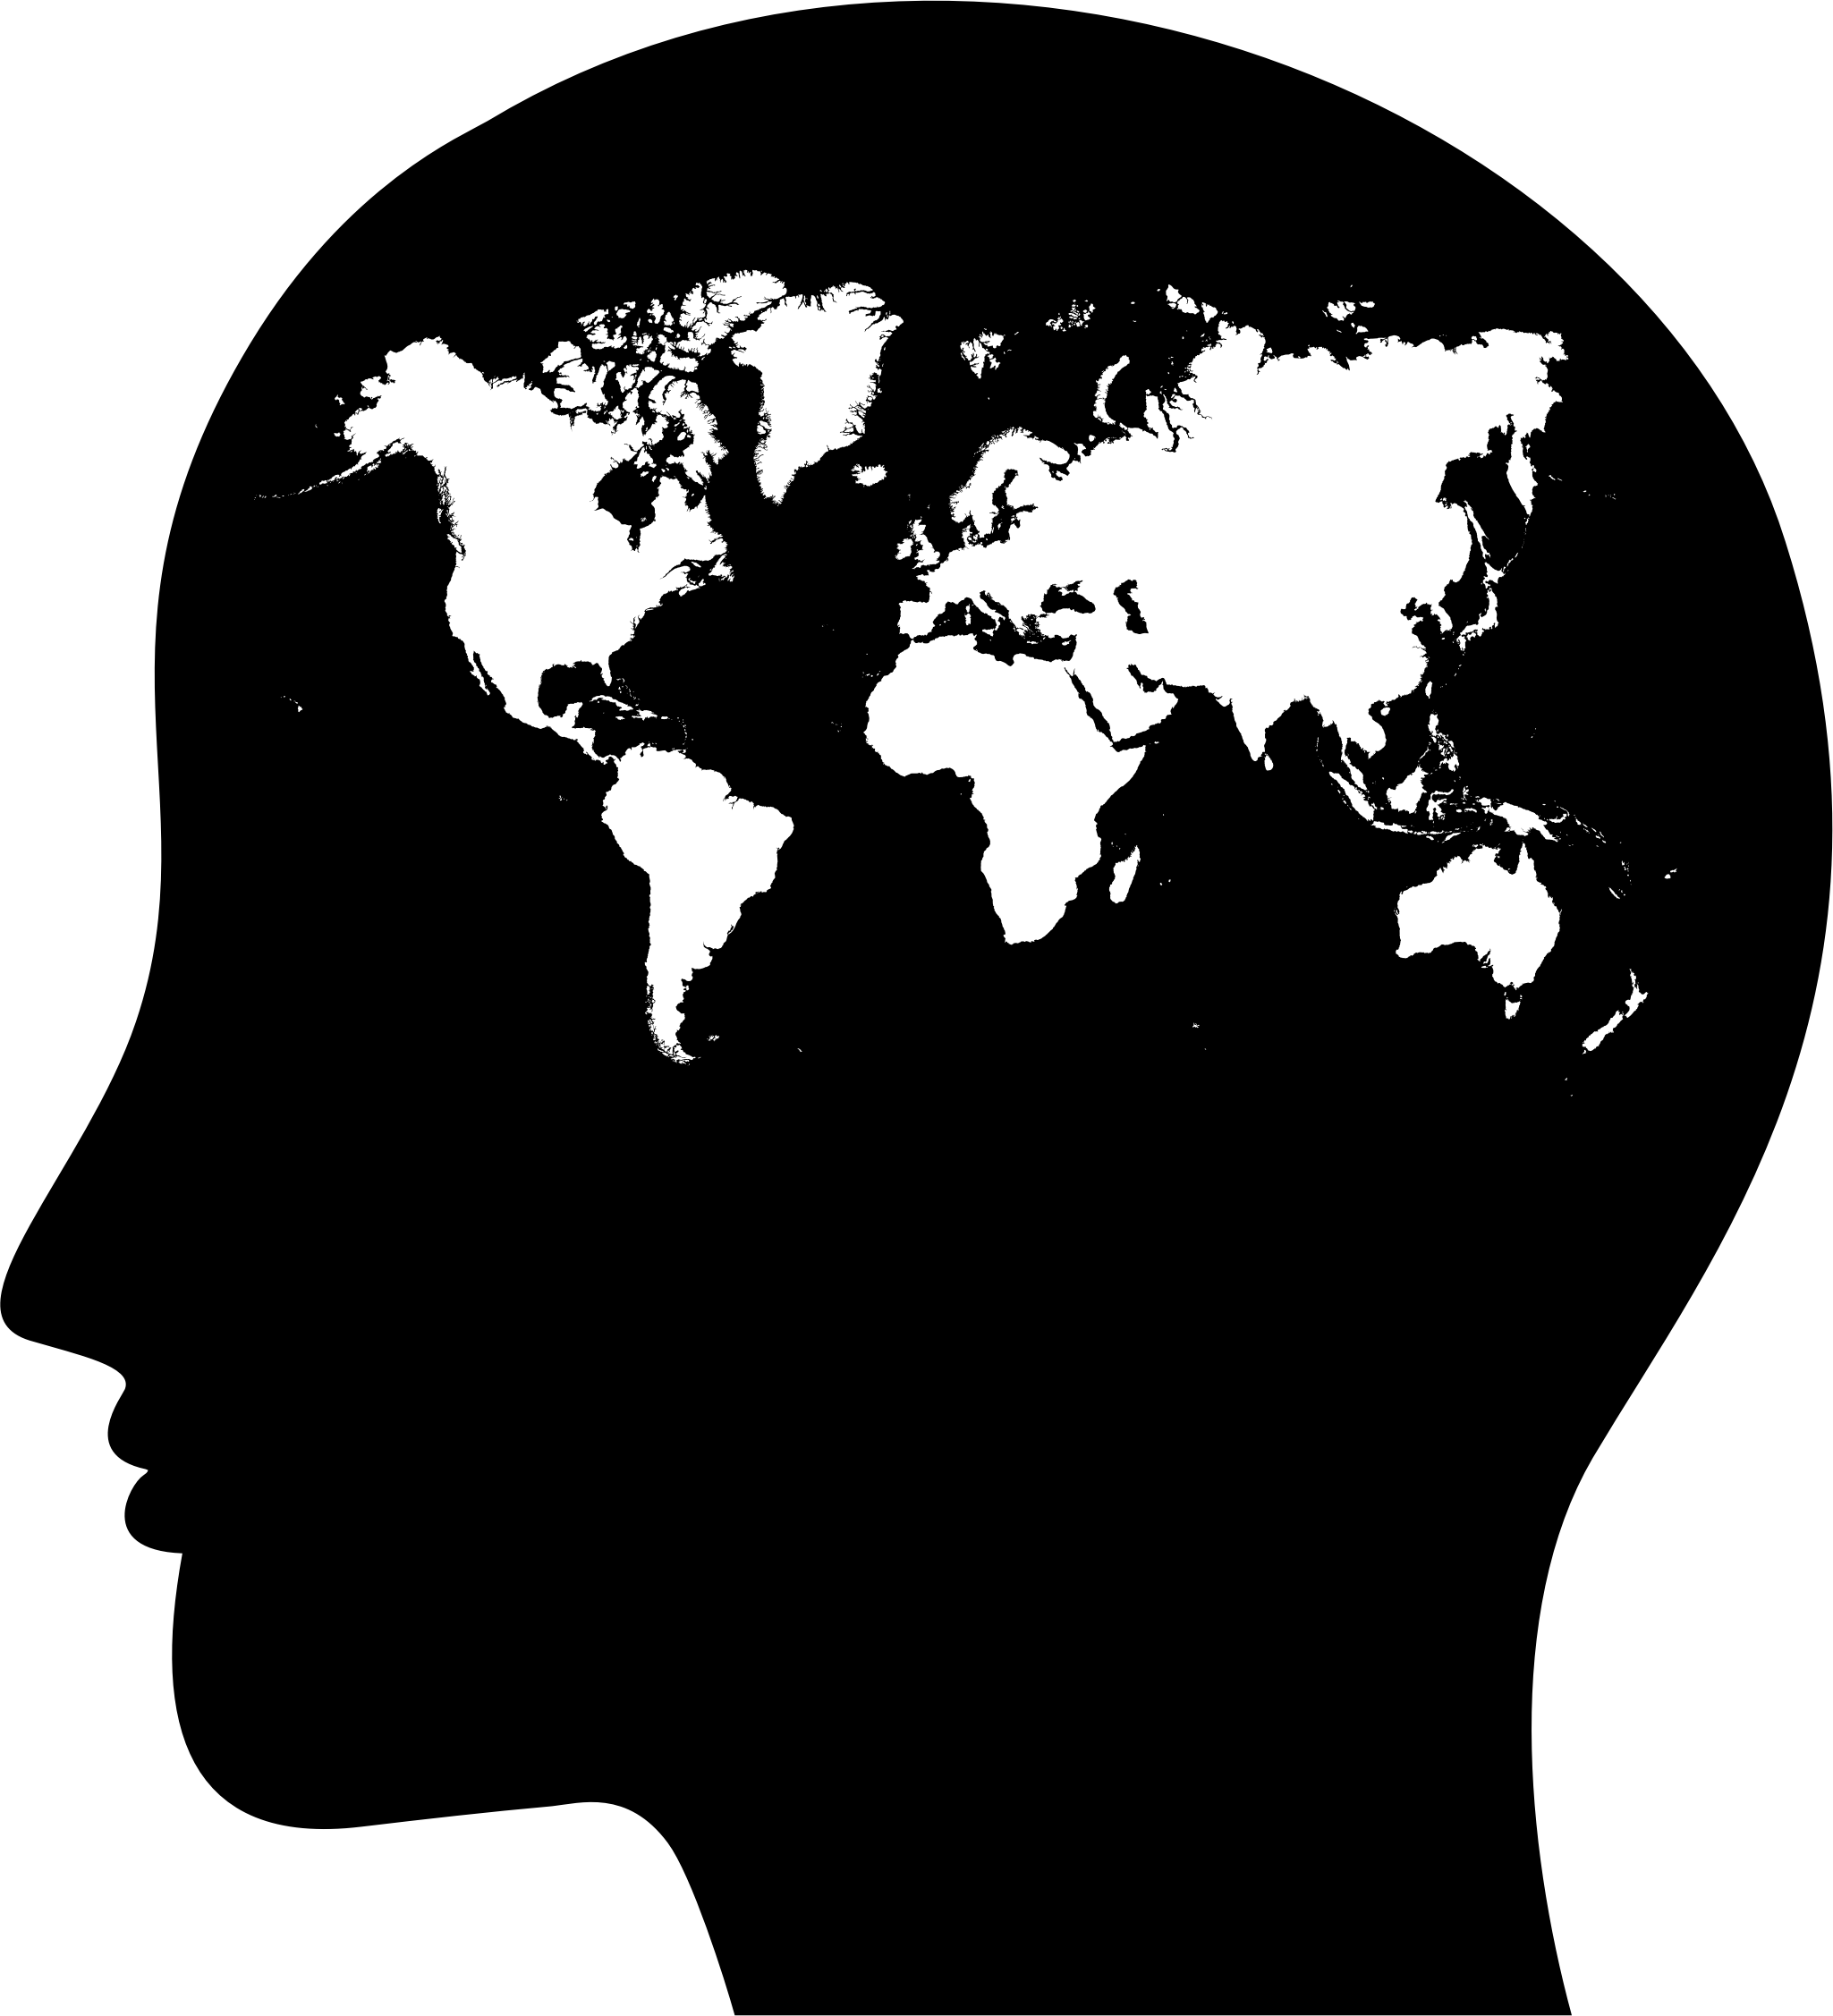 Human head silhouette png. Female profile world map